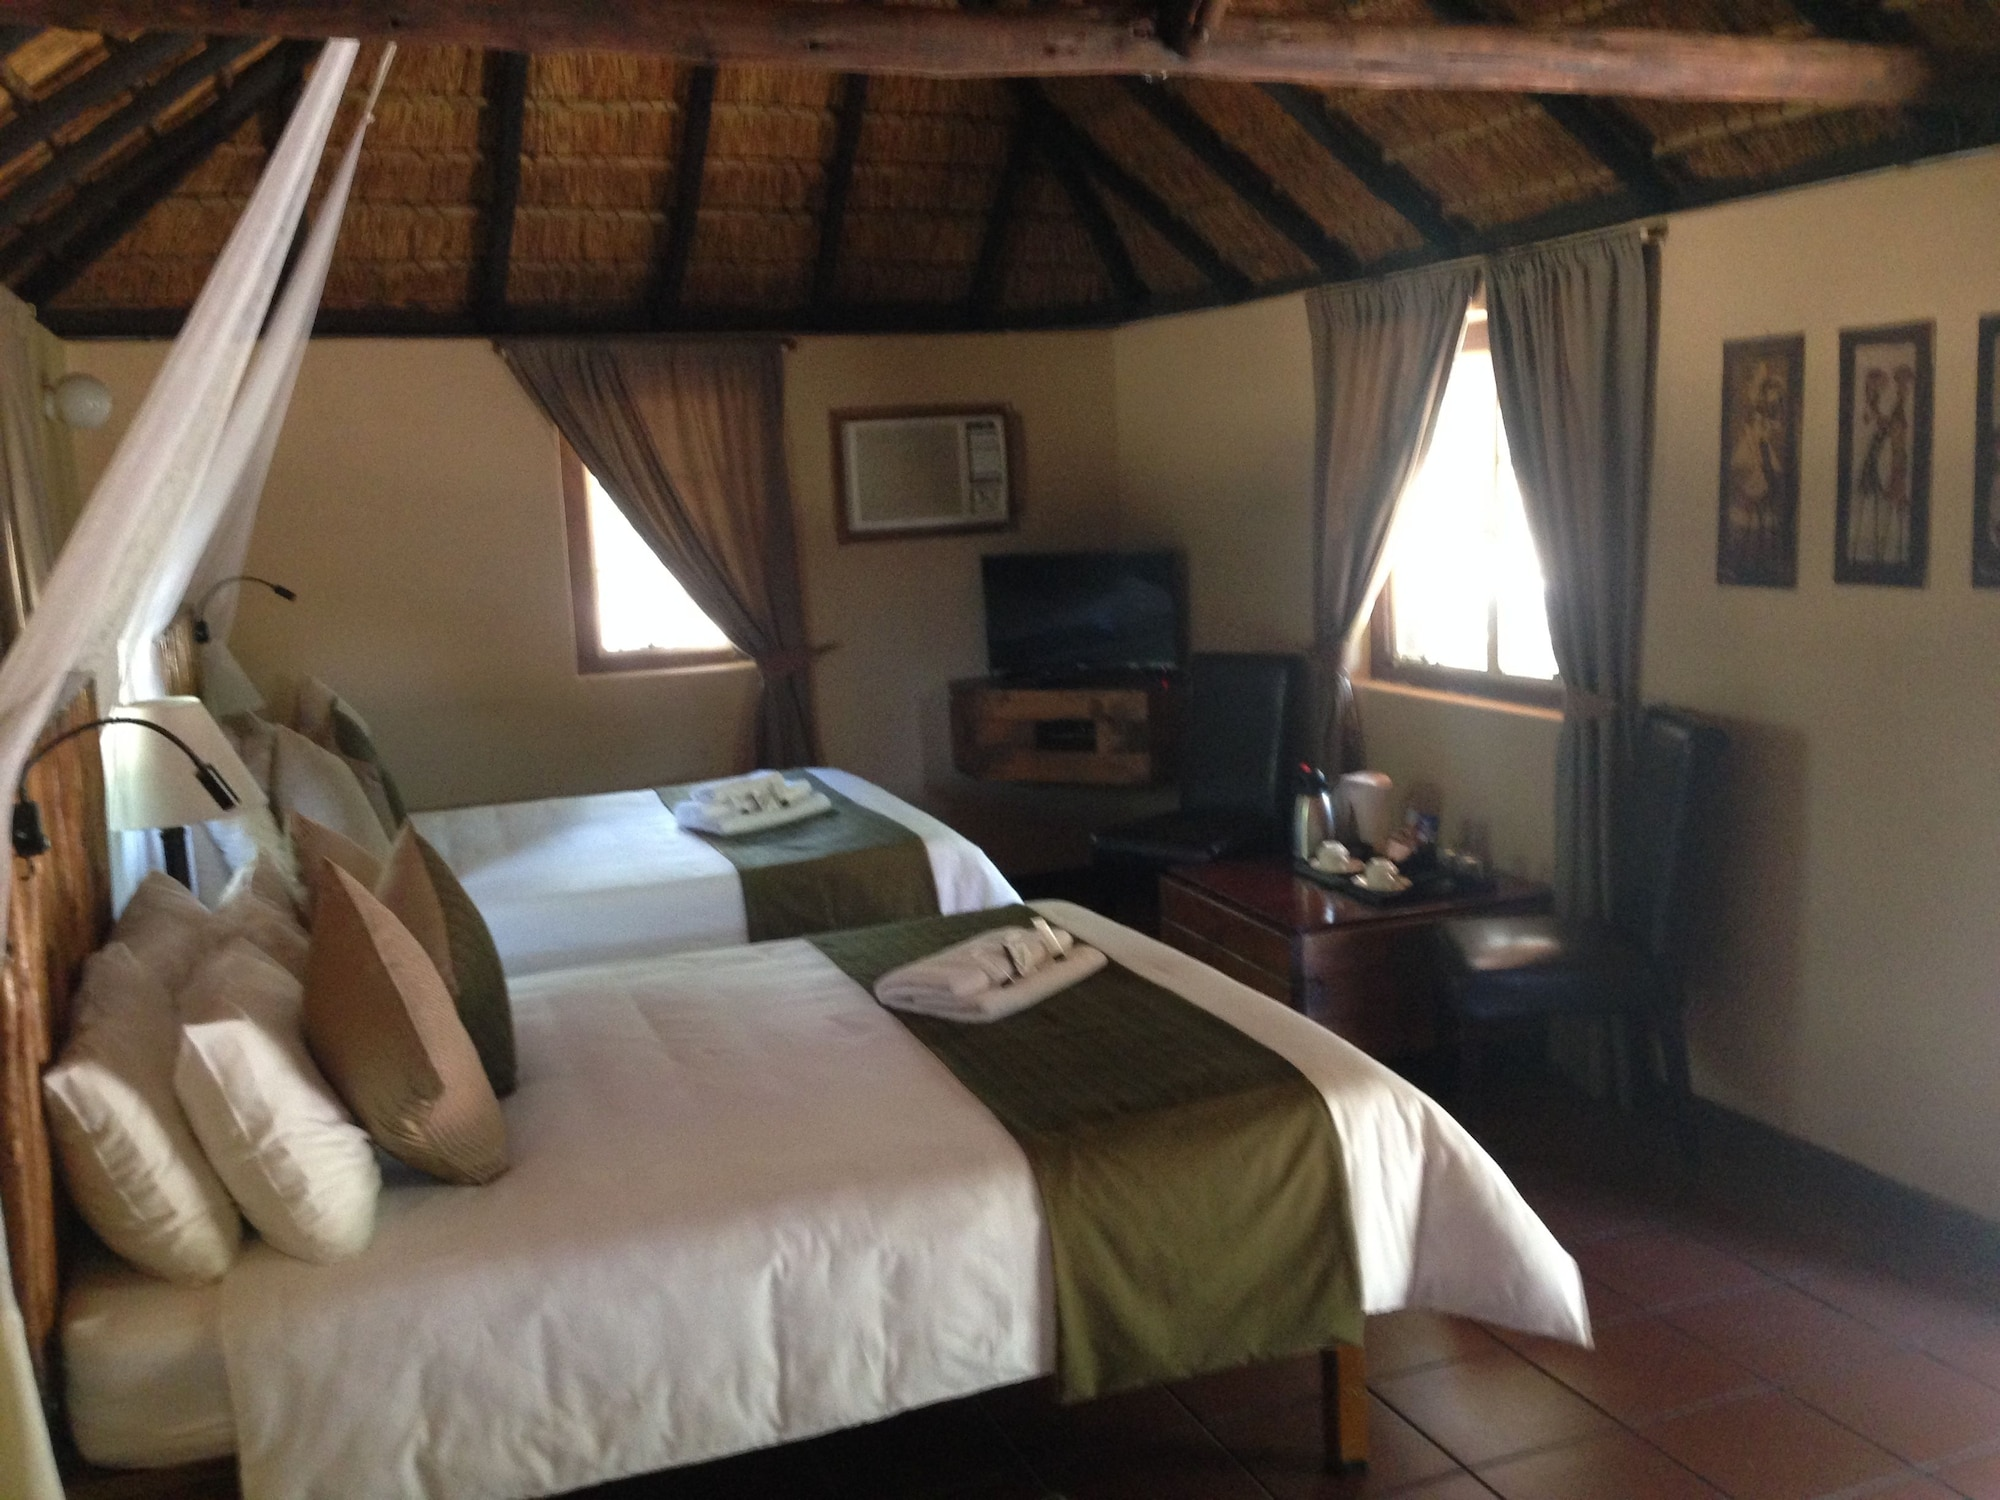 Phokoje Bush Lodge, Bobonong